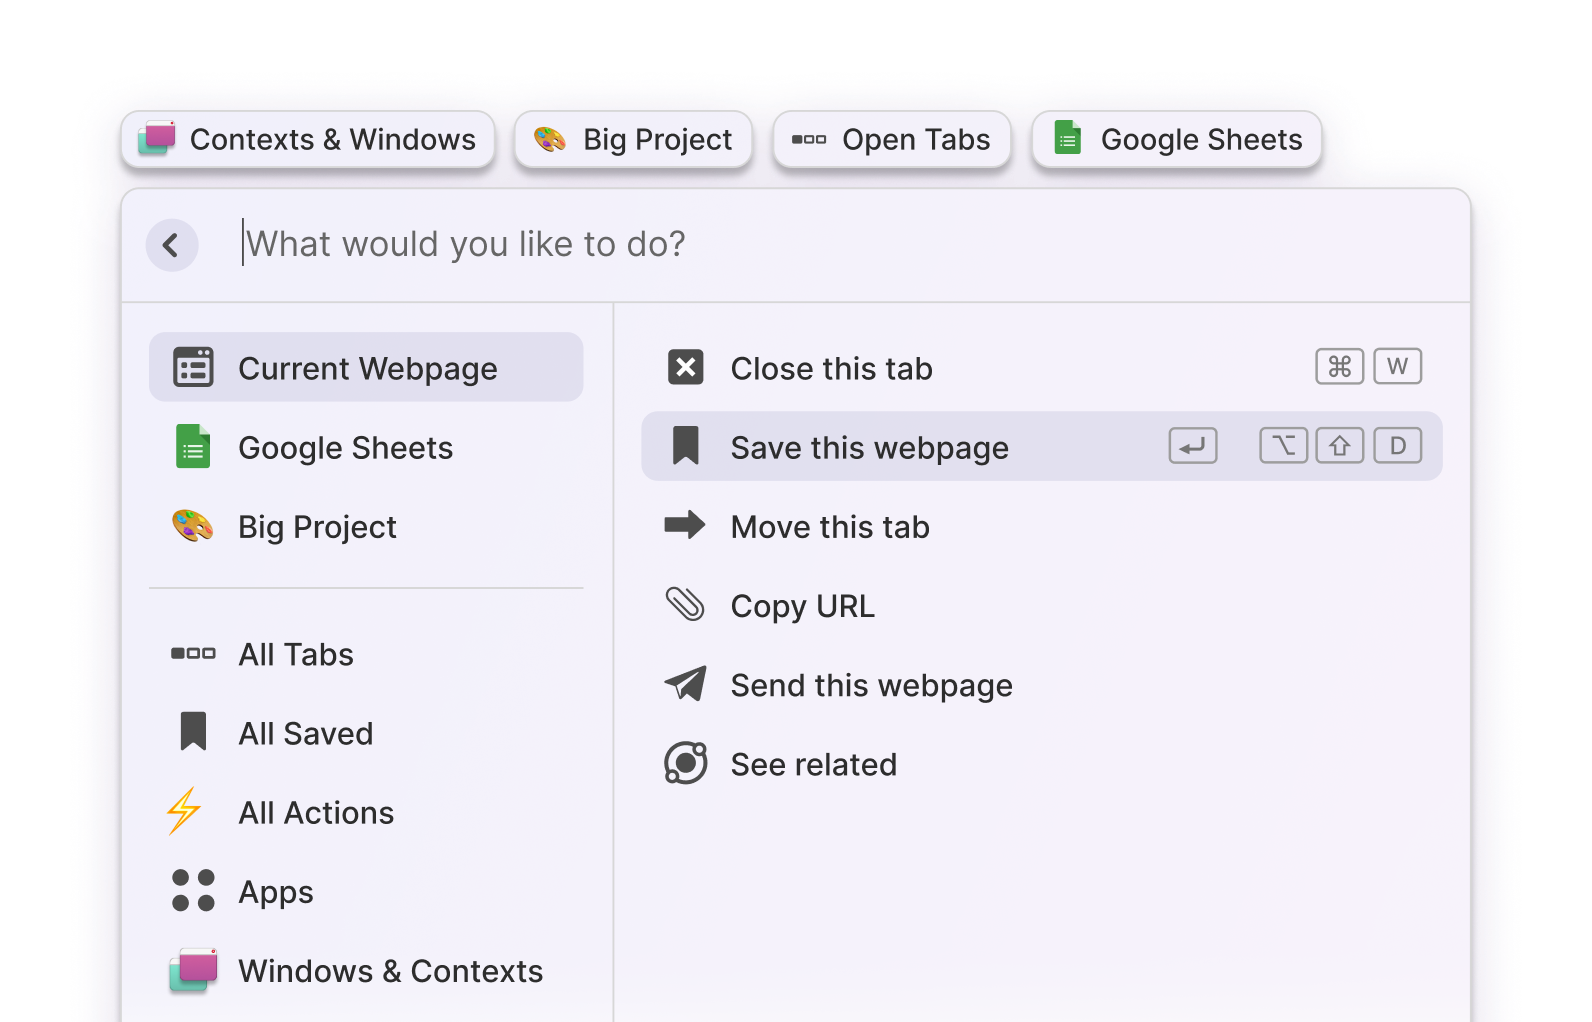 A screenshot of Comake Navigator showing contextual actions relative to a currently open website.